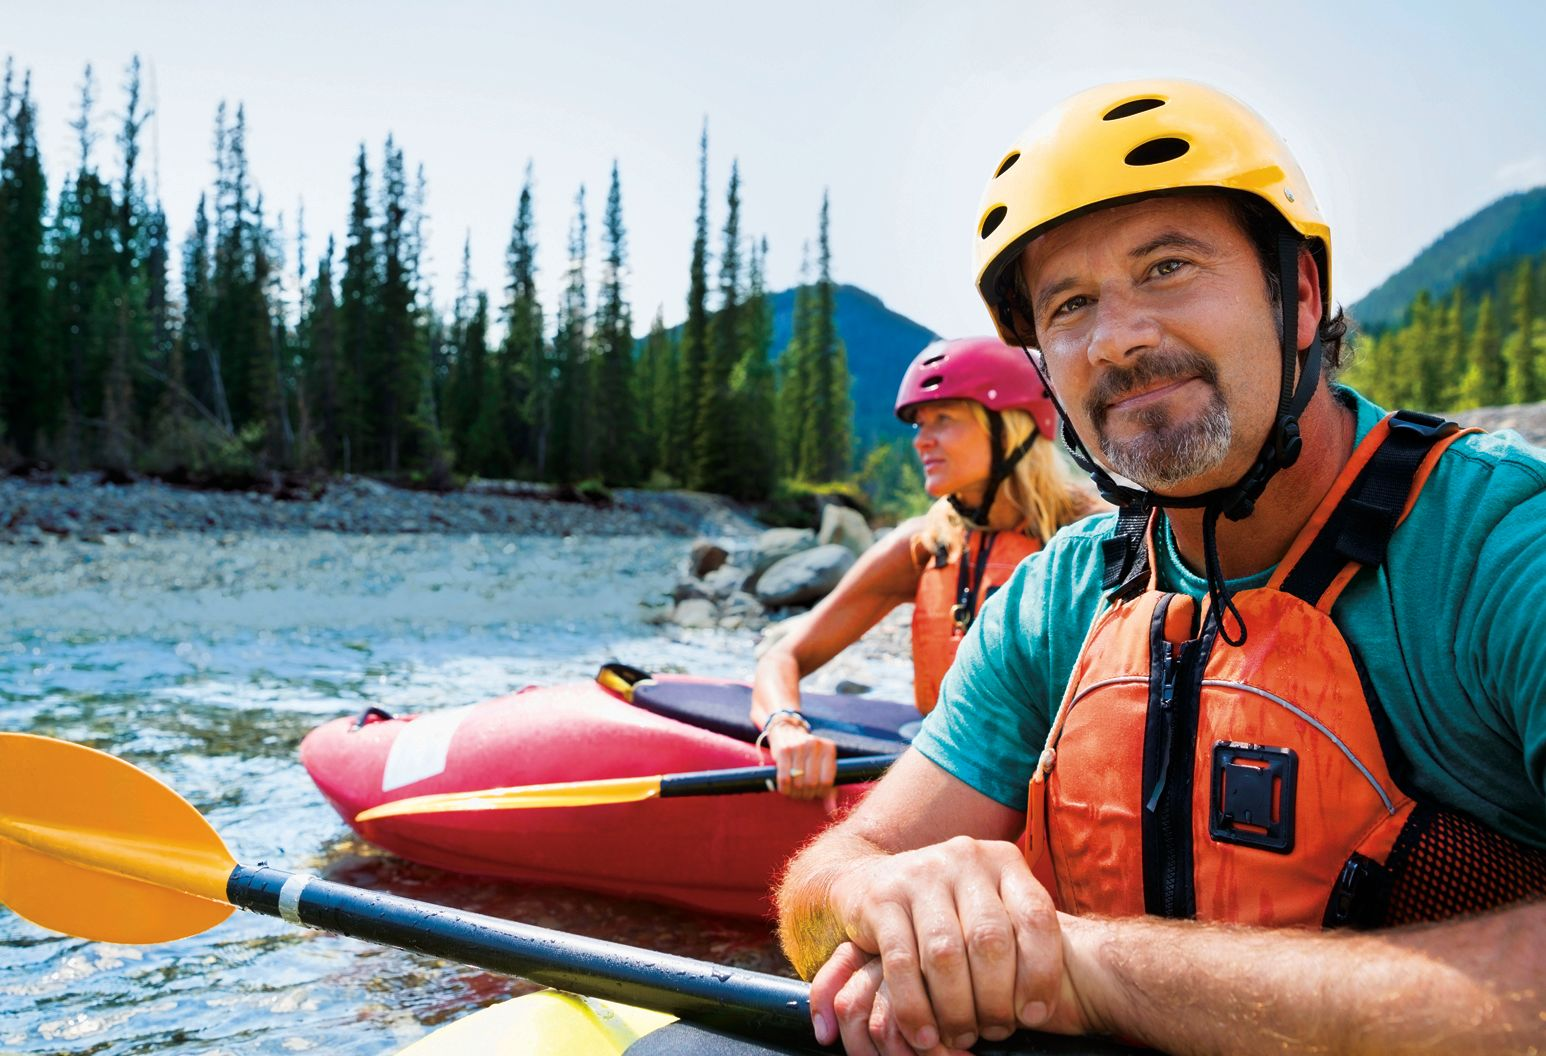 Portrait of confident man kayaking in river